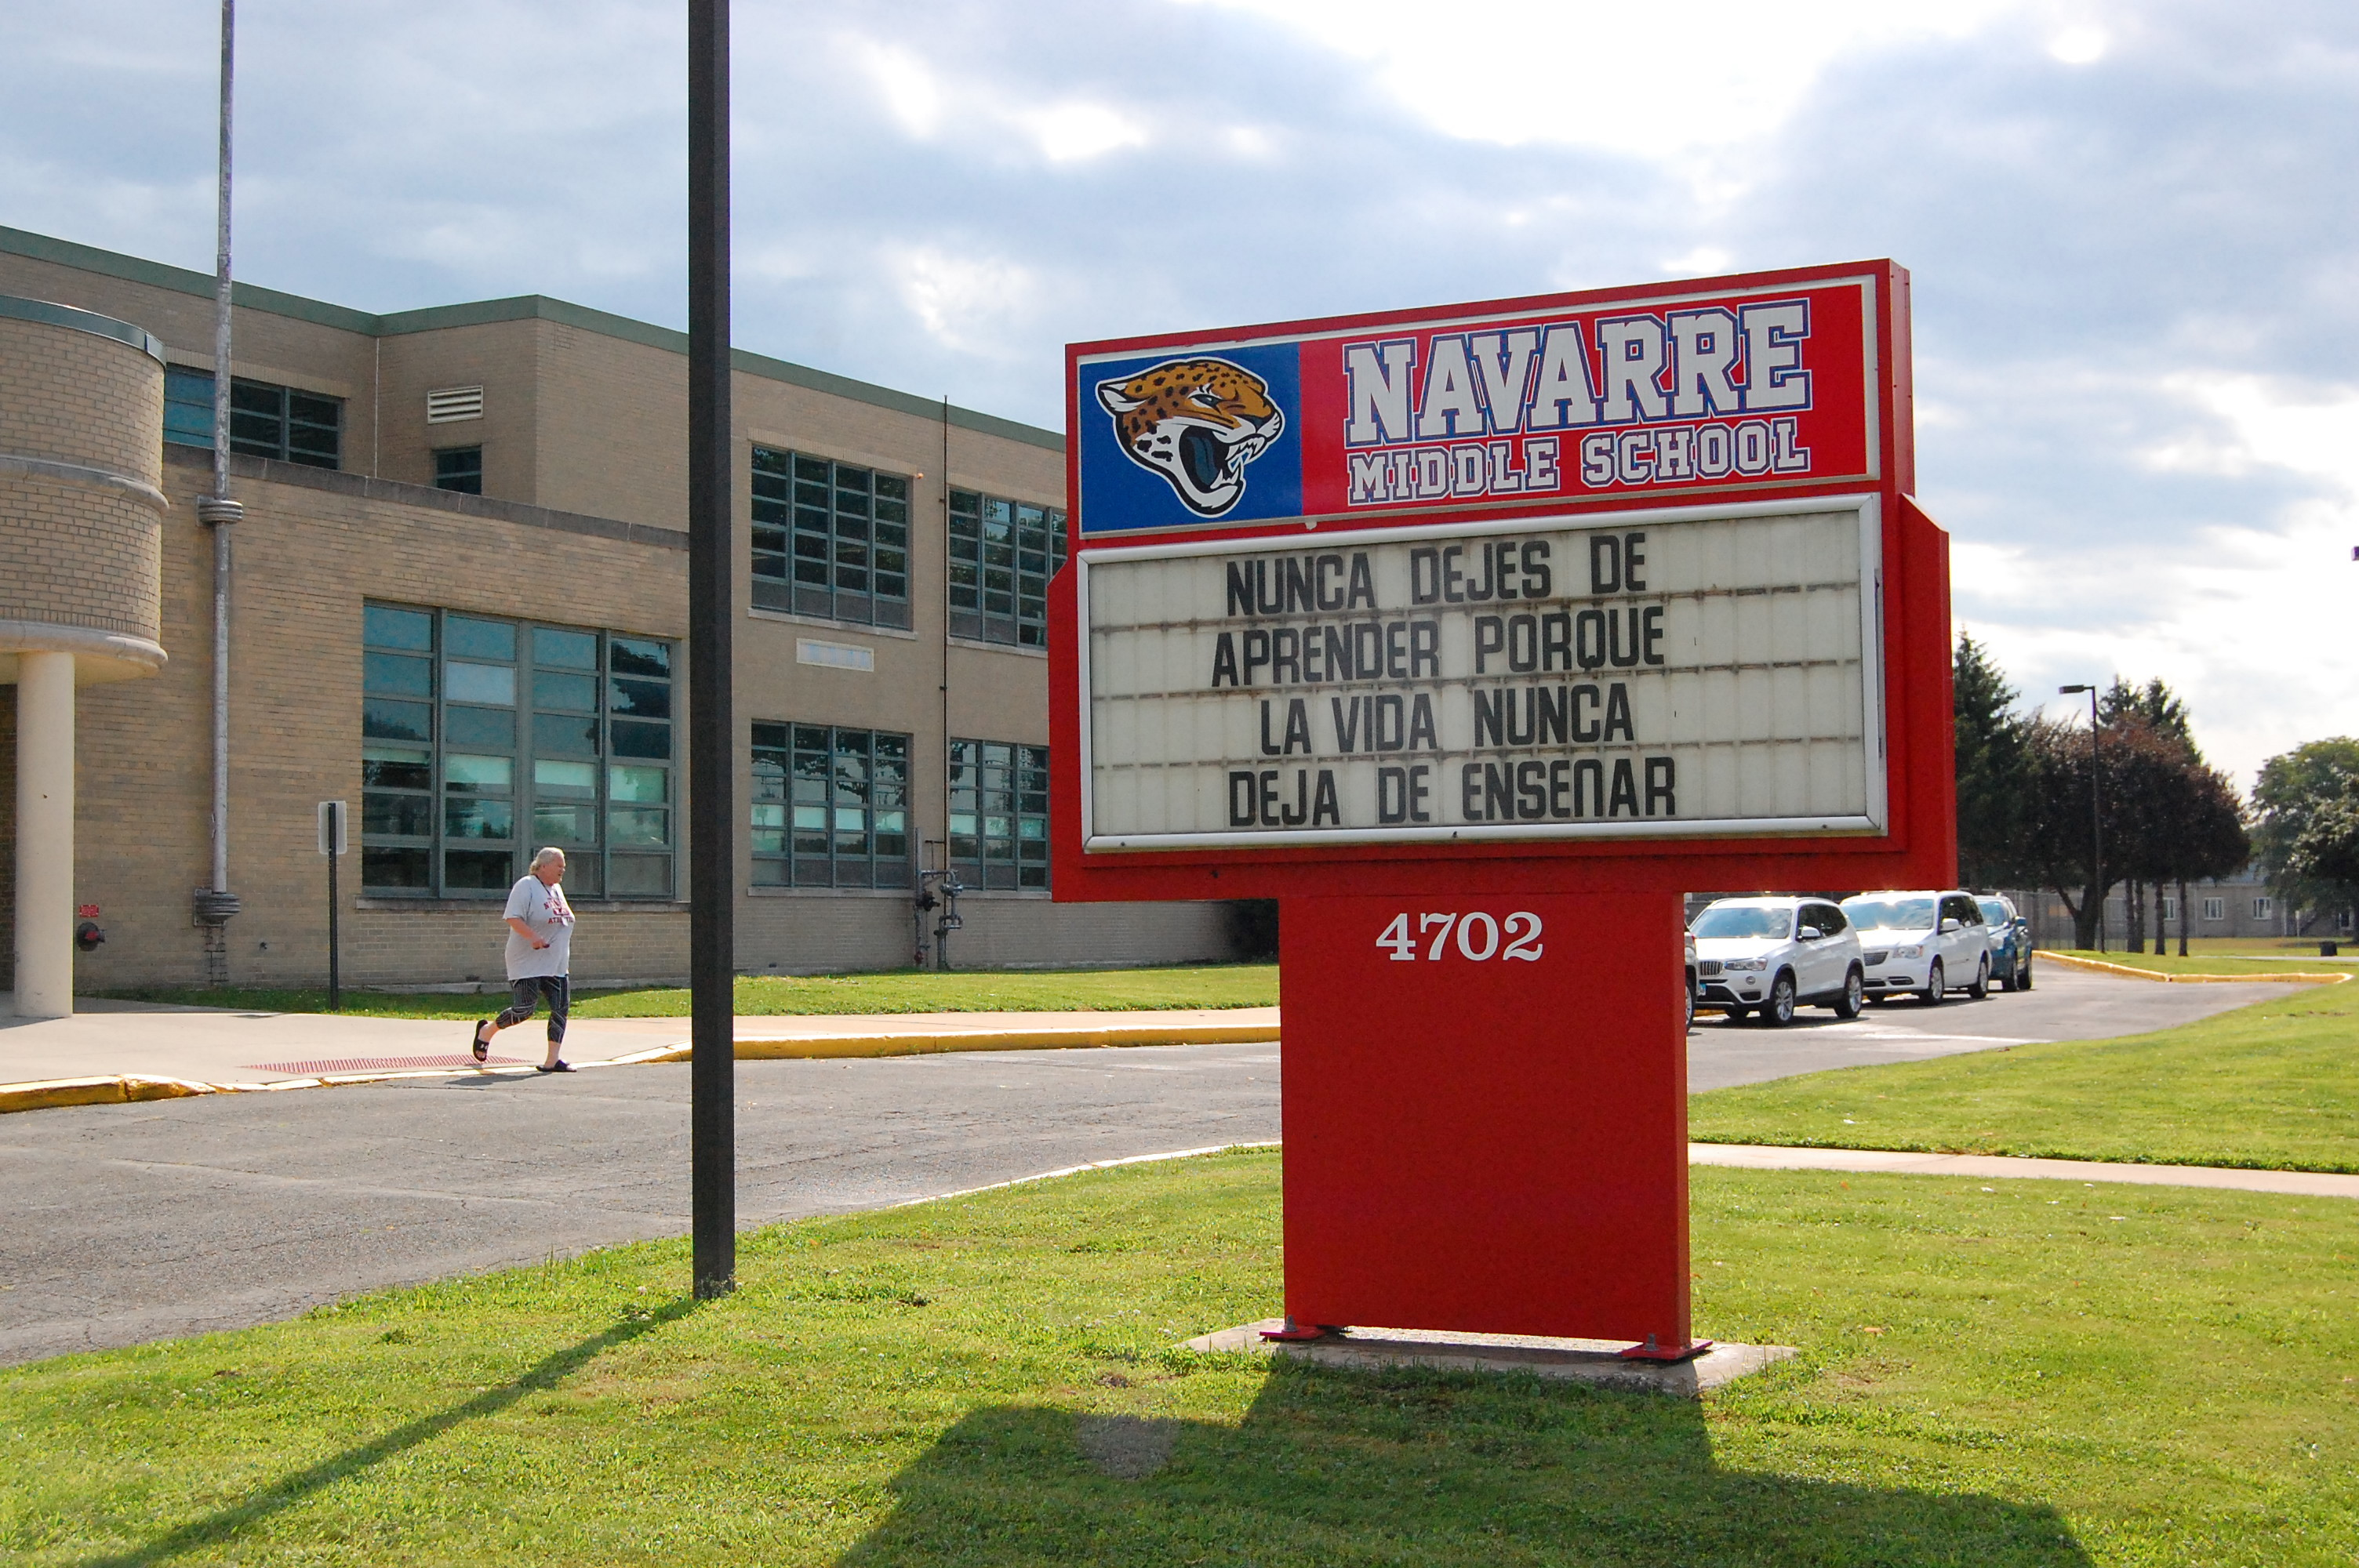 Navarre Middle School enrolls Latino students and English learners at twice the rate of the South Bend, Indiana school district.